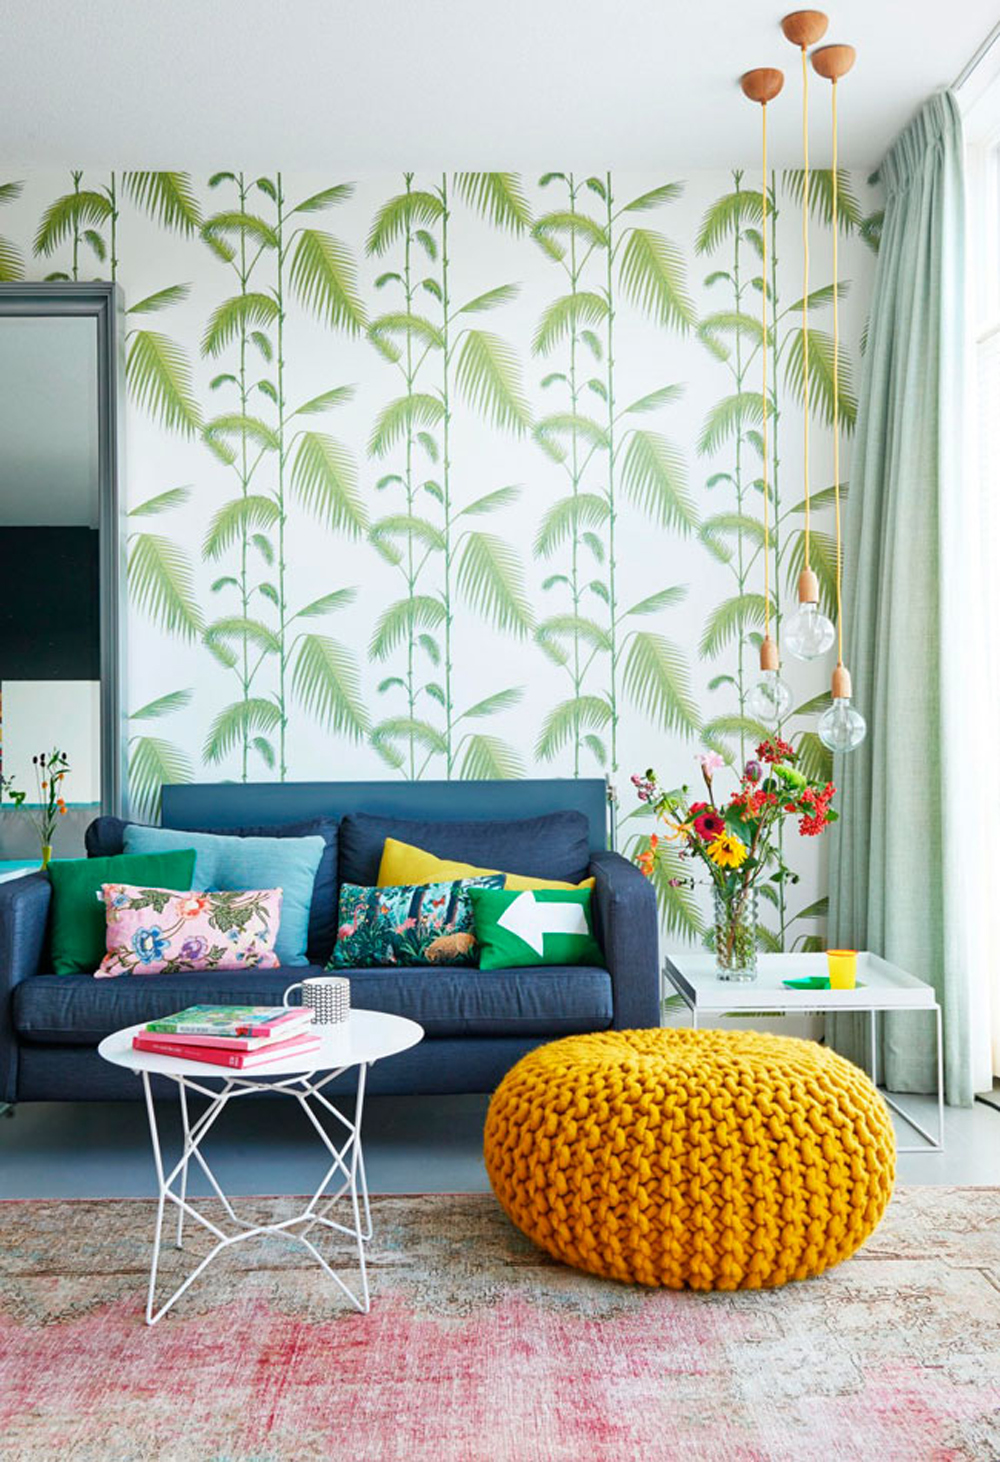 5 Tips For Decorating With Feature Wallpaper Sophie Robinson